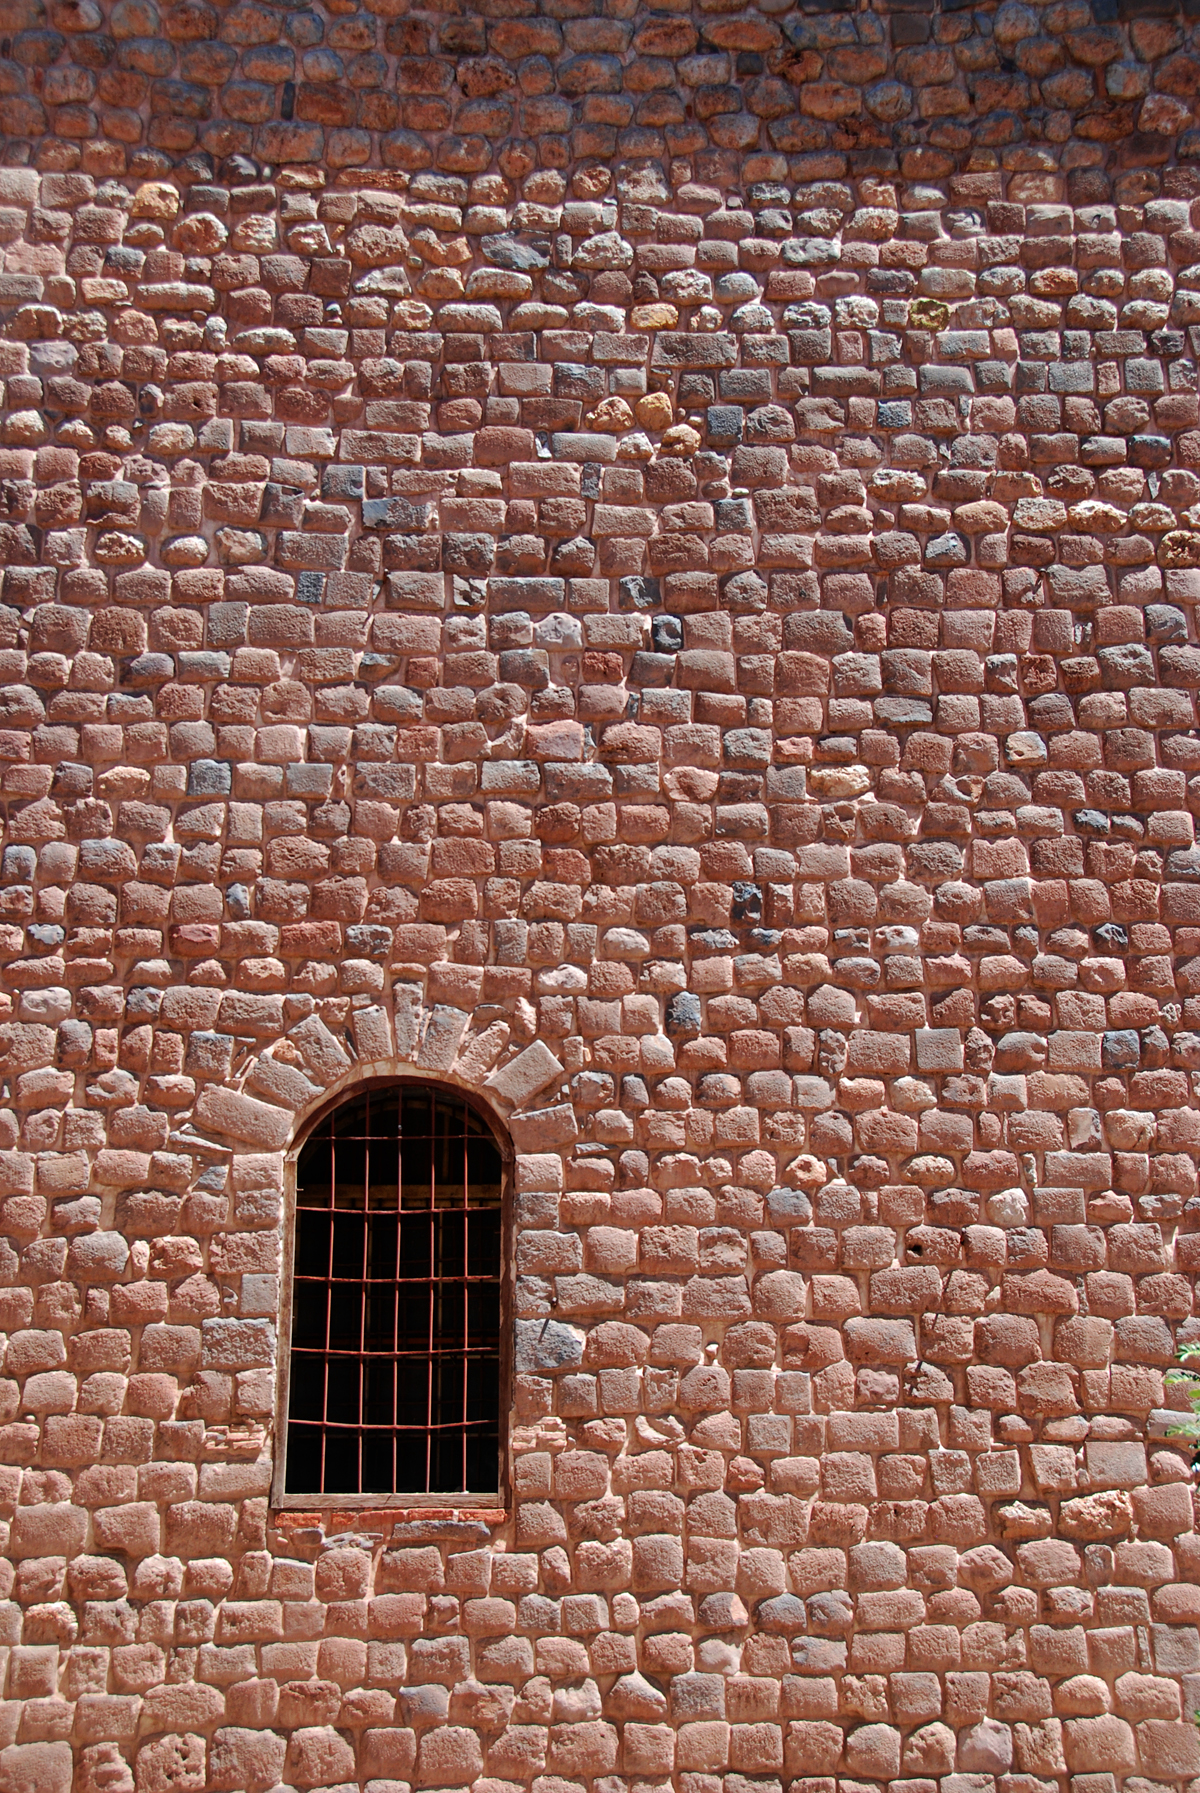 This is a window in the side of a church, not a prison.